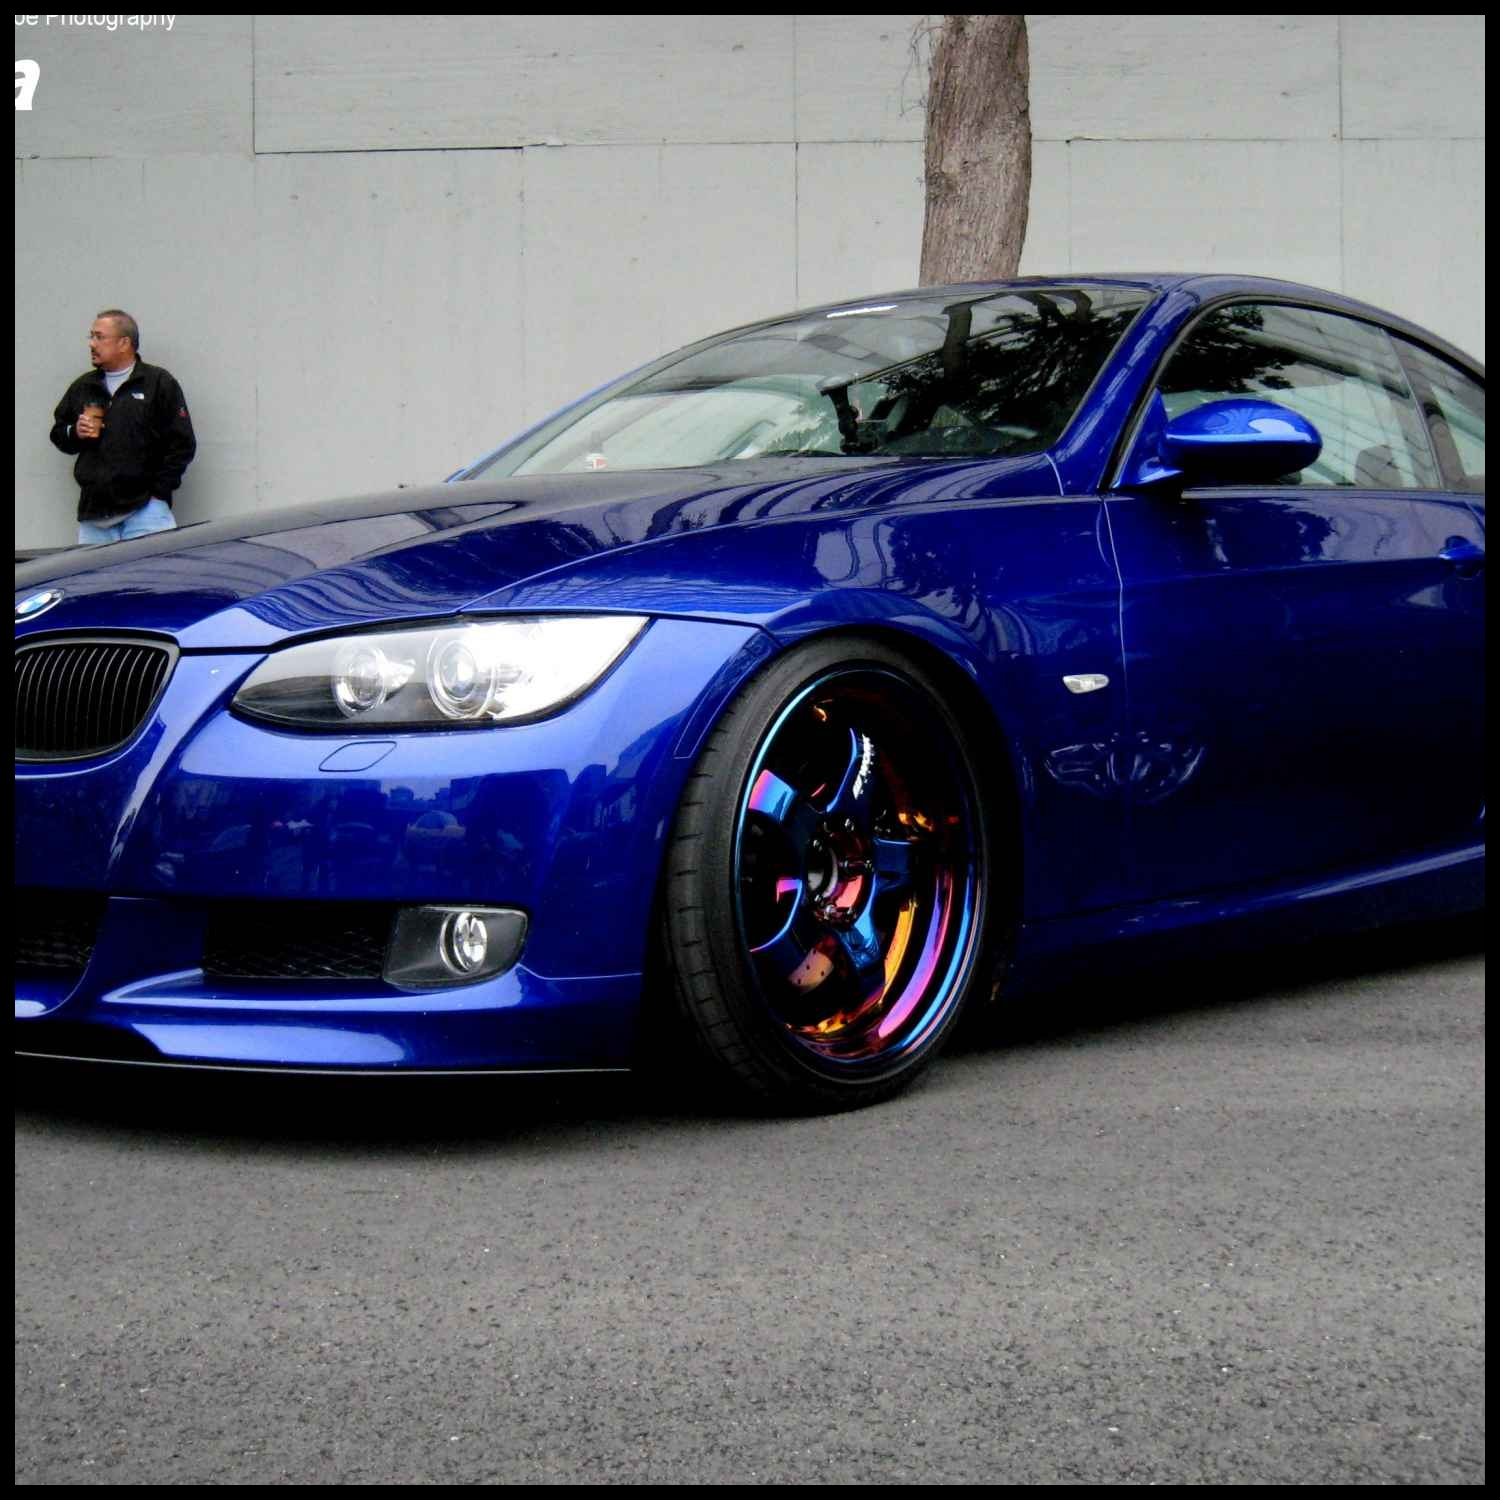 Bmw 335i Coupe Custom Really sick Bmw 335i with custom paint and